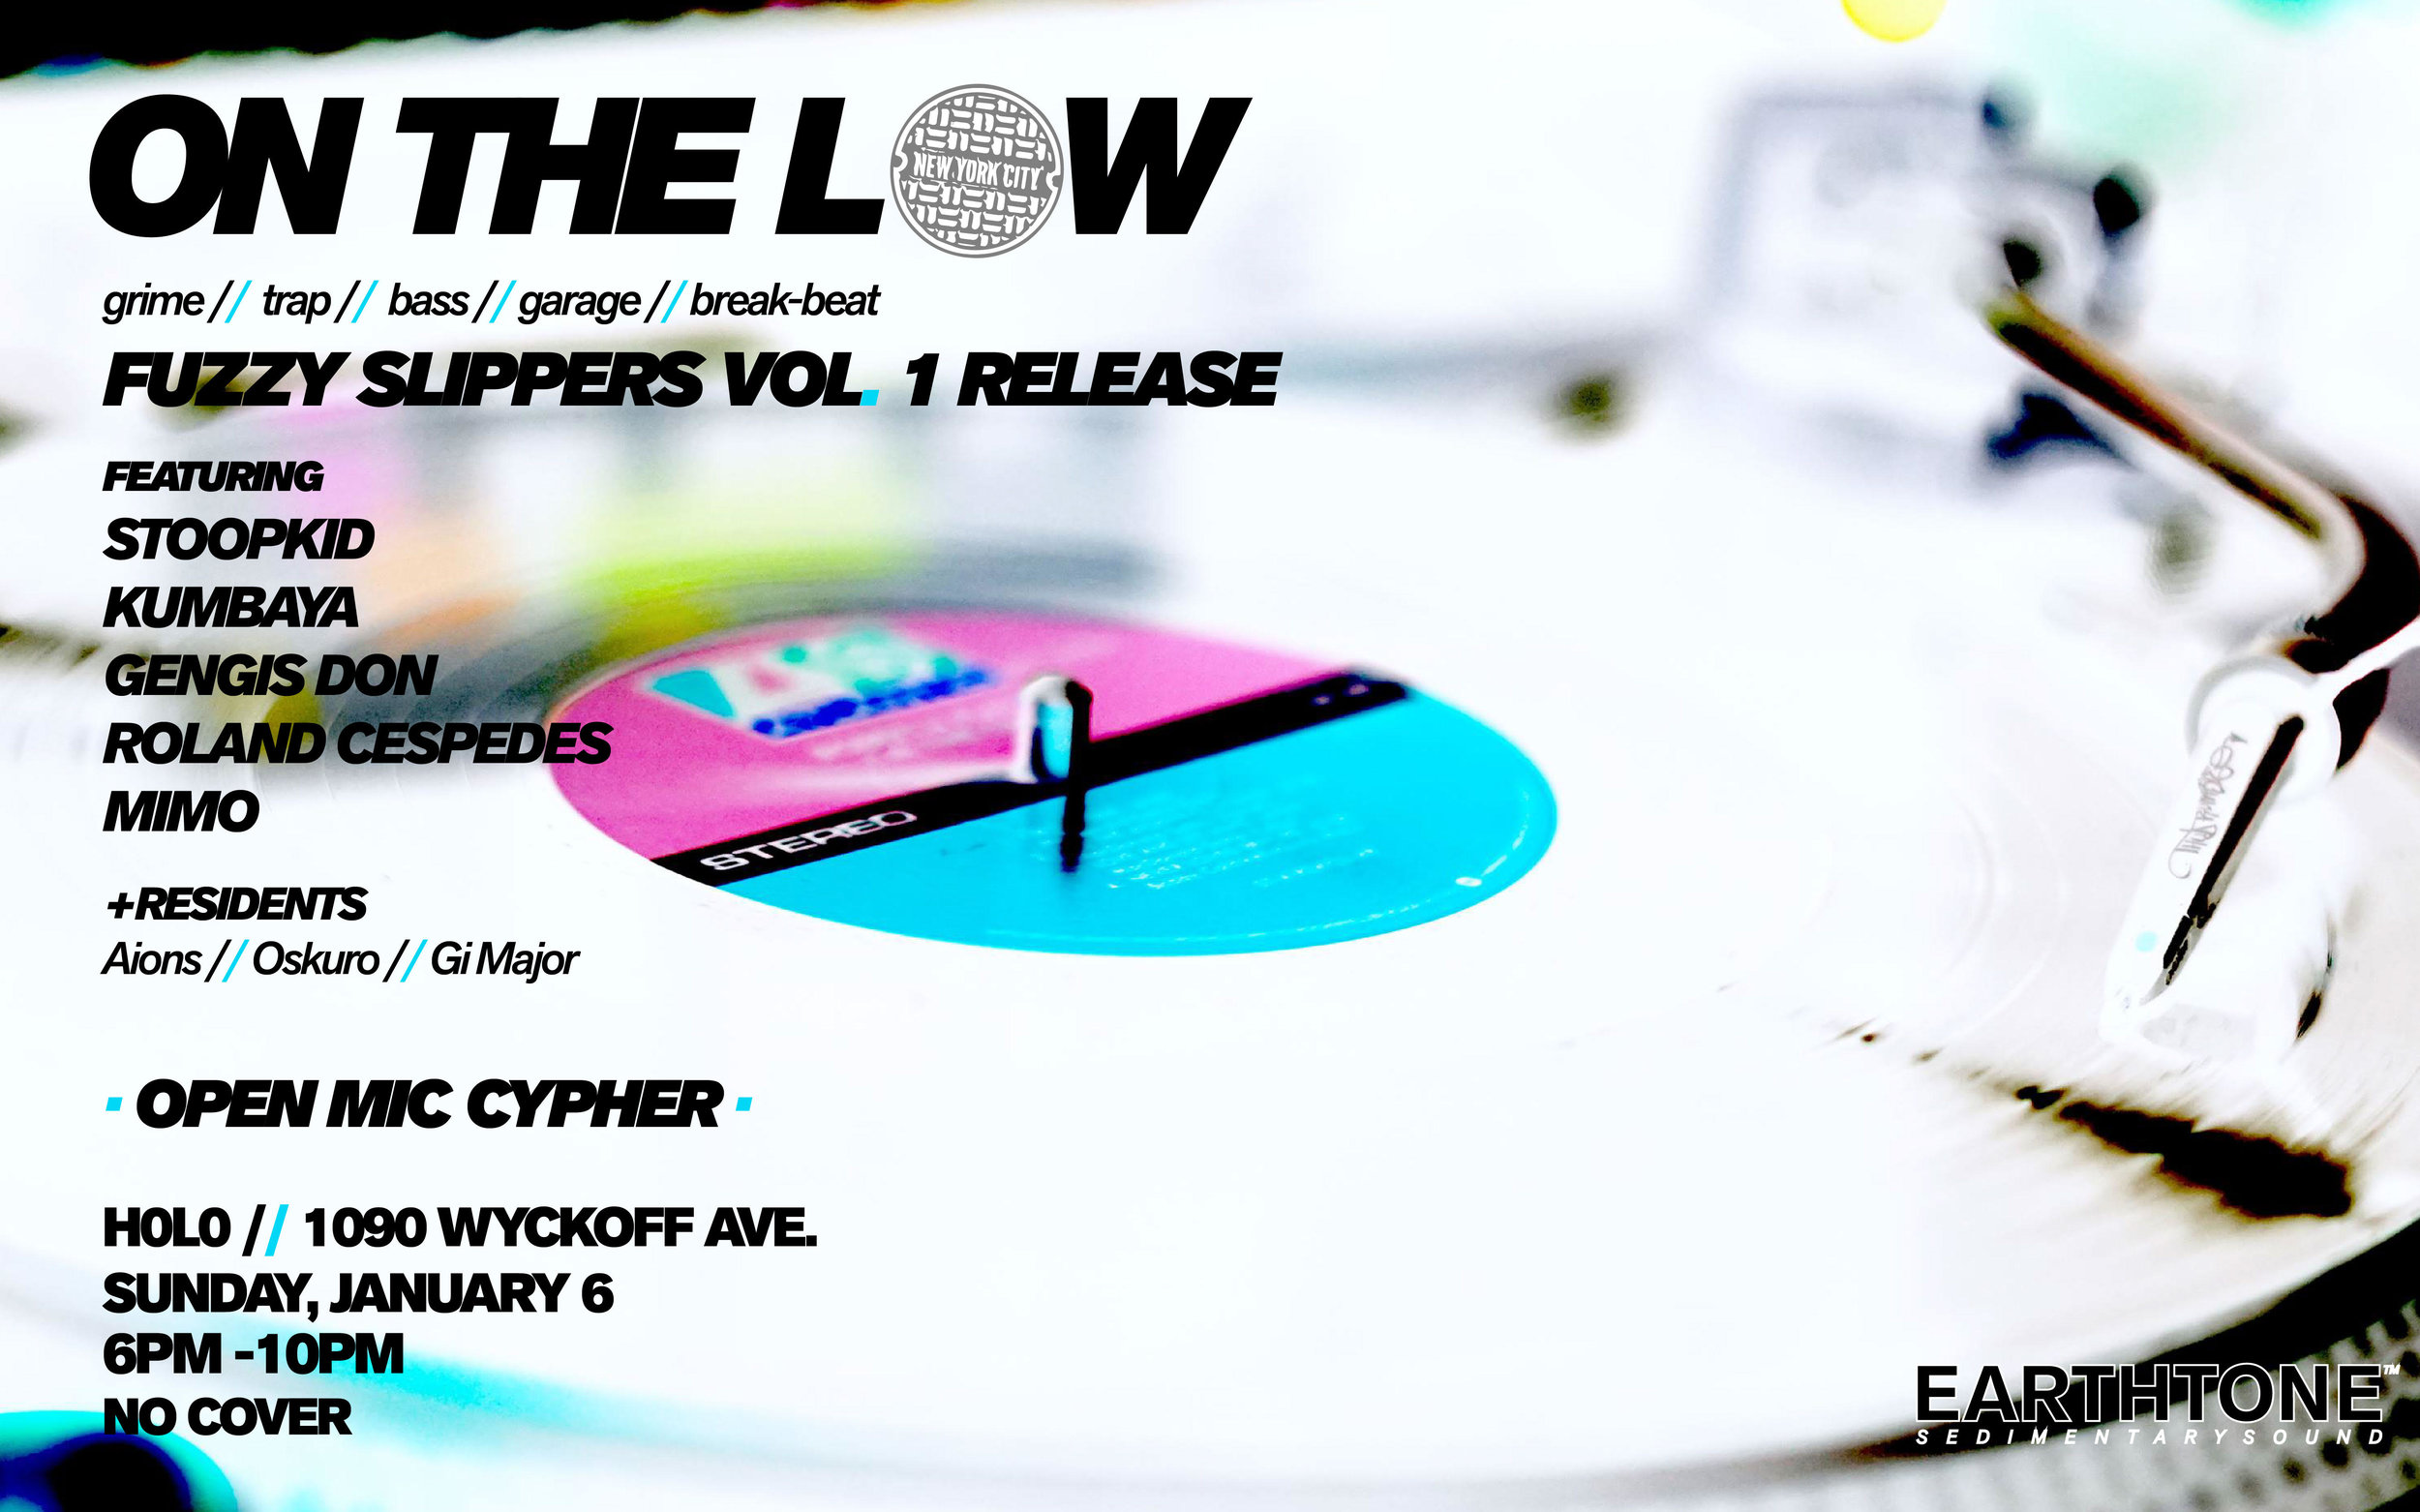 For our 3rd installment we're switching things up to highlight the eclectic sounds of New York City. Stoopkid is the alias of resident producer, Oskuro. His Fuzzy Slippers Vol. 1 release will showcase the classic sound of Jazz and Hip Hop fusion. To kick off the release, we've invited out some of the most talented local producers in hip hop. Supporting acts: Kumbaya, Gengis Don, Roland Cespedes and our special guest vocalist, Mimo.  + EARTHTONE Residents Oskuro / Gi Major / Aions  Threads provided by... ▪️ DAIRY  H0L0 | 1090 Wyckoff Avenue Sunday, January 6th 6PM - 10PM No Cover  One Love. One Sound. Sedimentary.